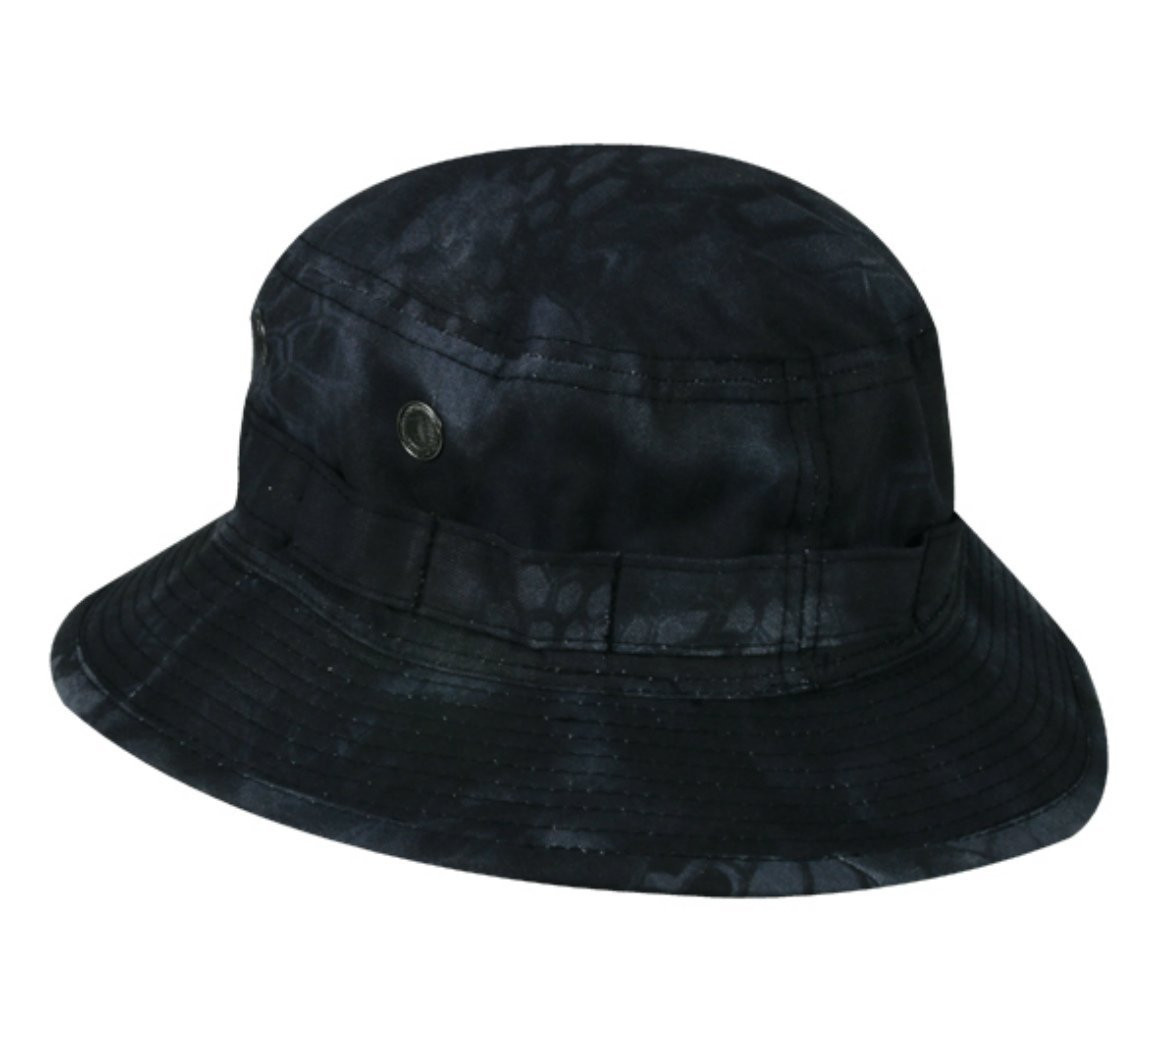 Kryptek Camo Twill Bucket Boonie Hat   Cap (Typhoon)  L XL.  - SHOP ... 187af1f2ae6